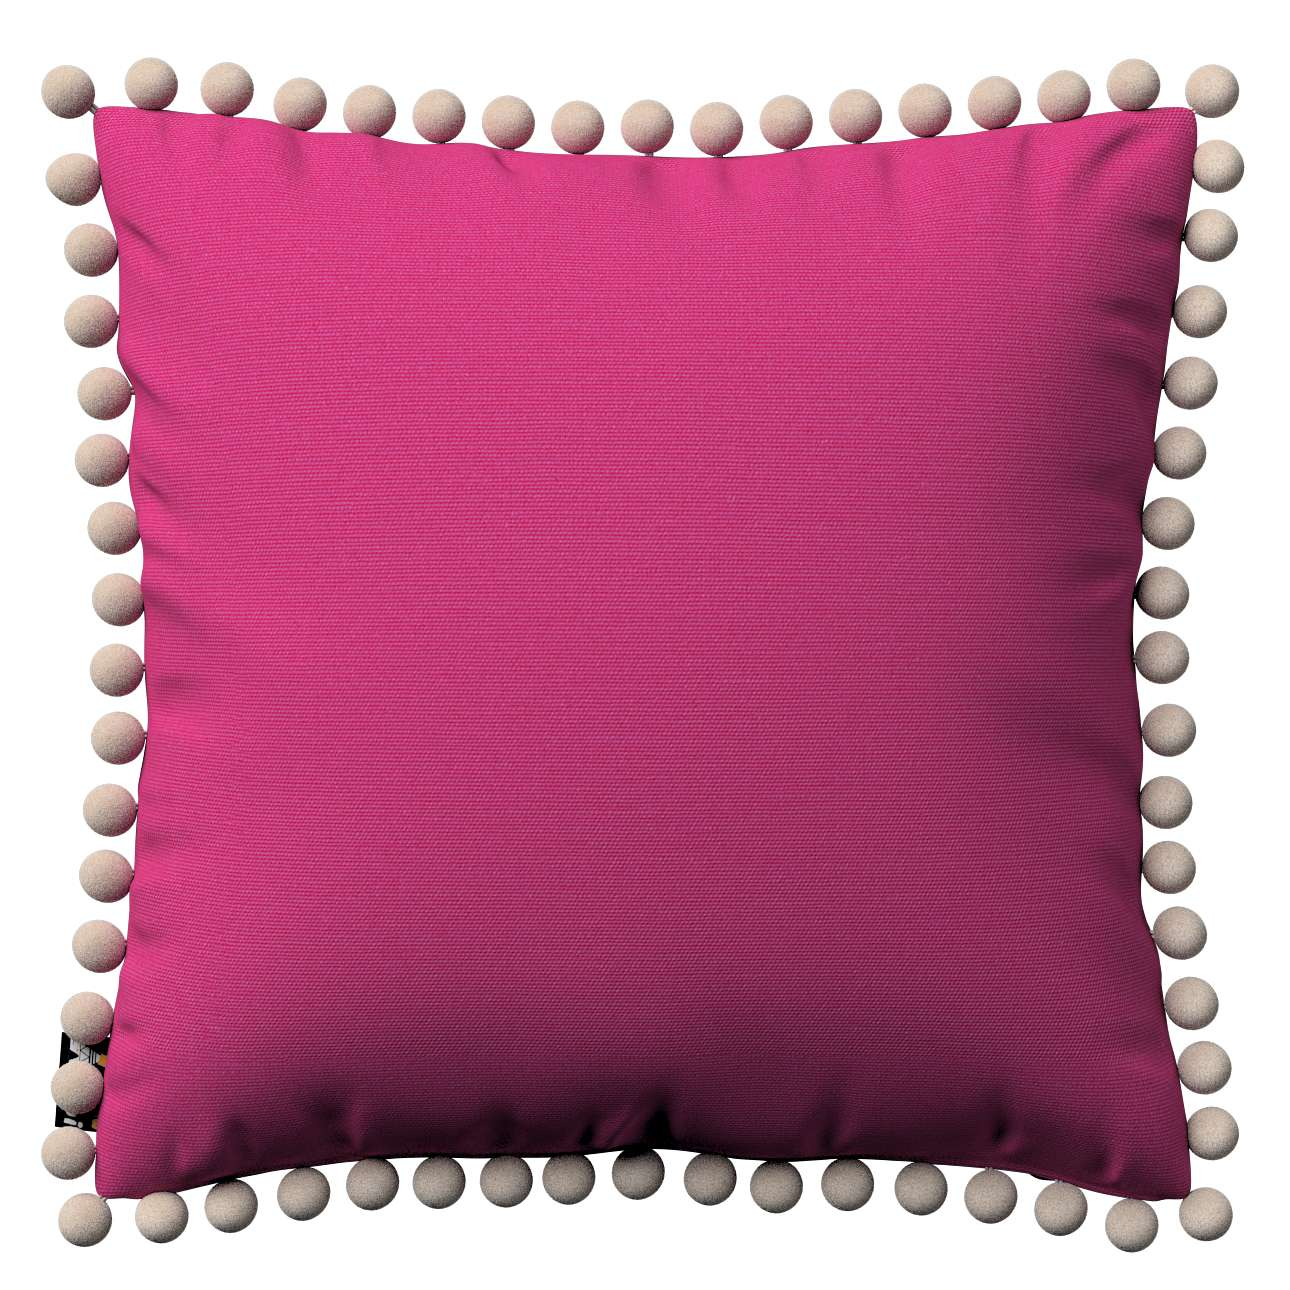 Daisy cushion covers with pom poms in collection Happiness, fabric: 133-60